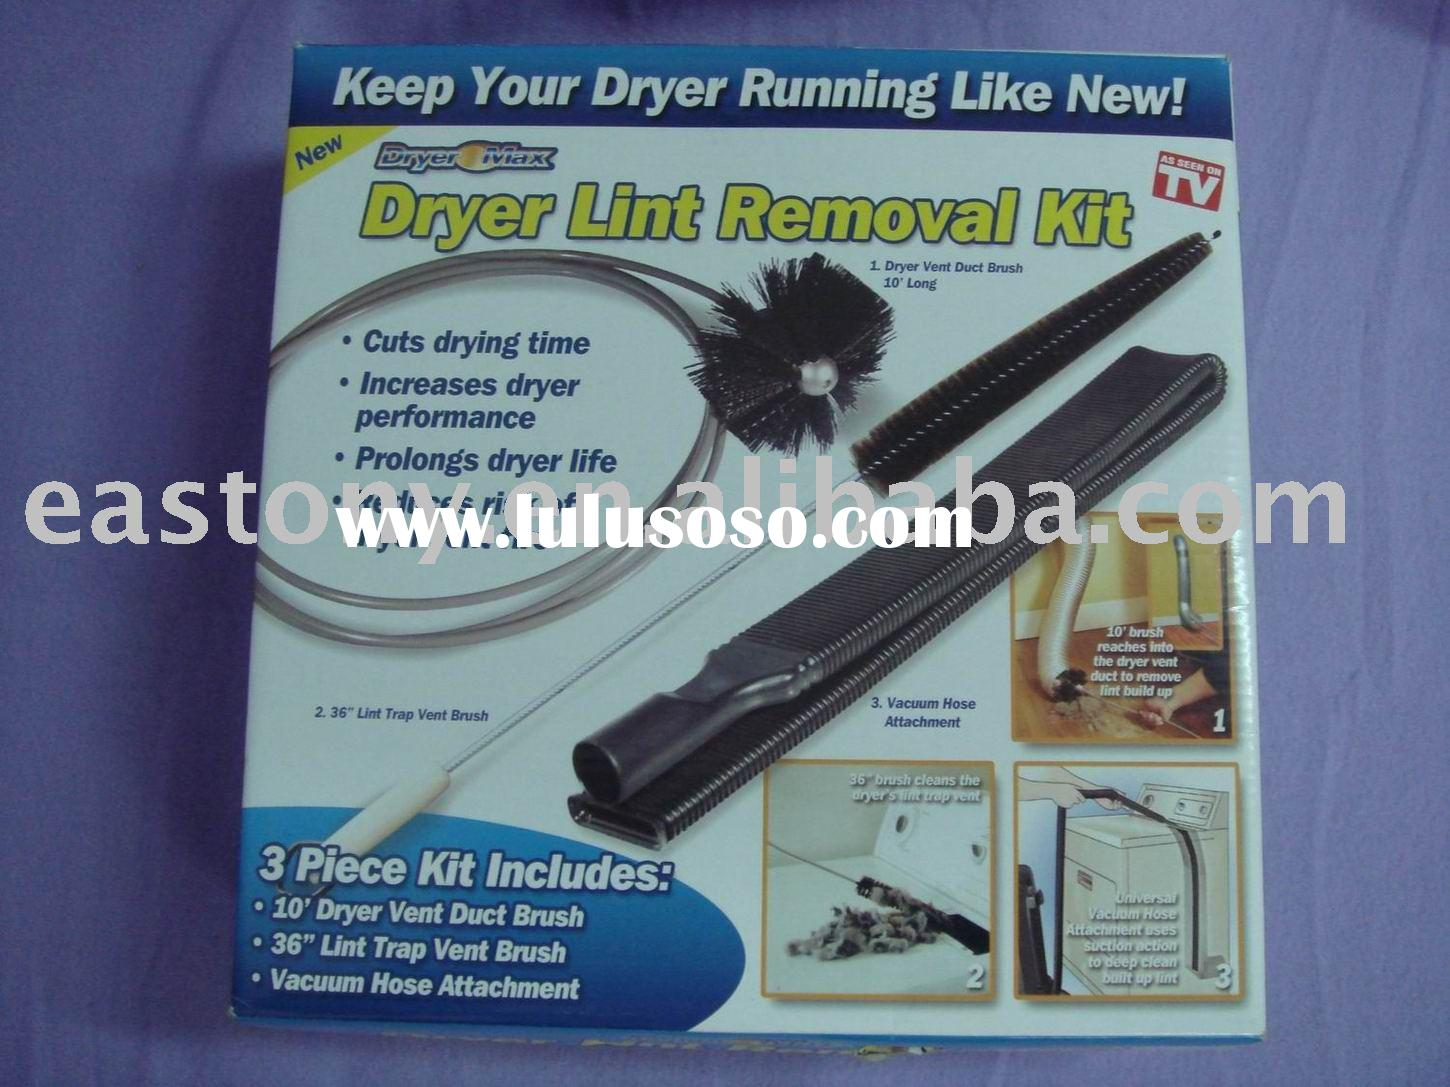 Dryer lint remover kit,dryer lint remover,lint remover kit,dryer lint brush,lint cleaner,dryer lint